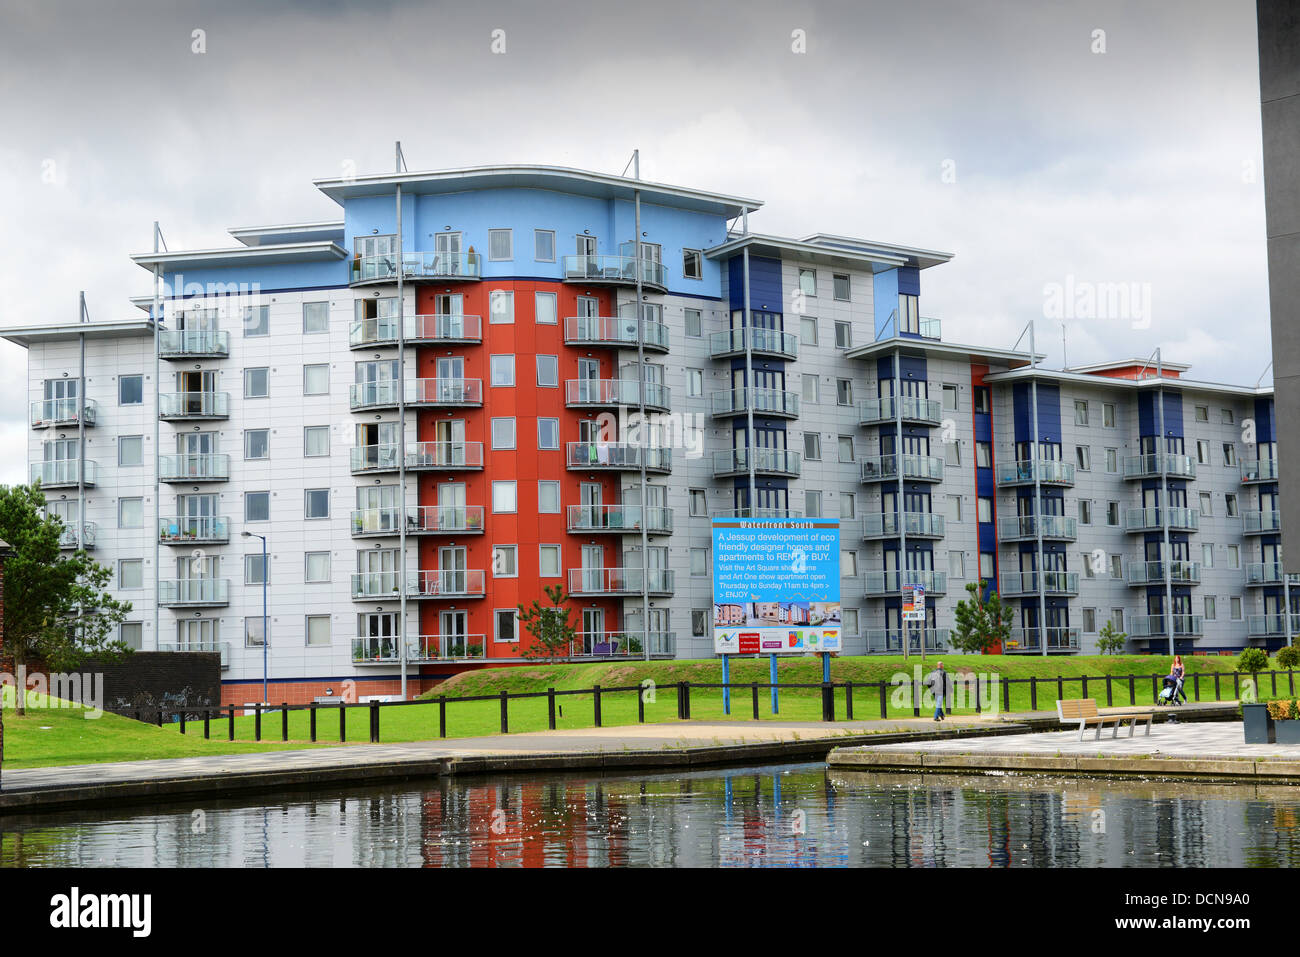 Walsall Apartments Stock Photos & Walsall Apartments Stock Images ...